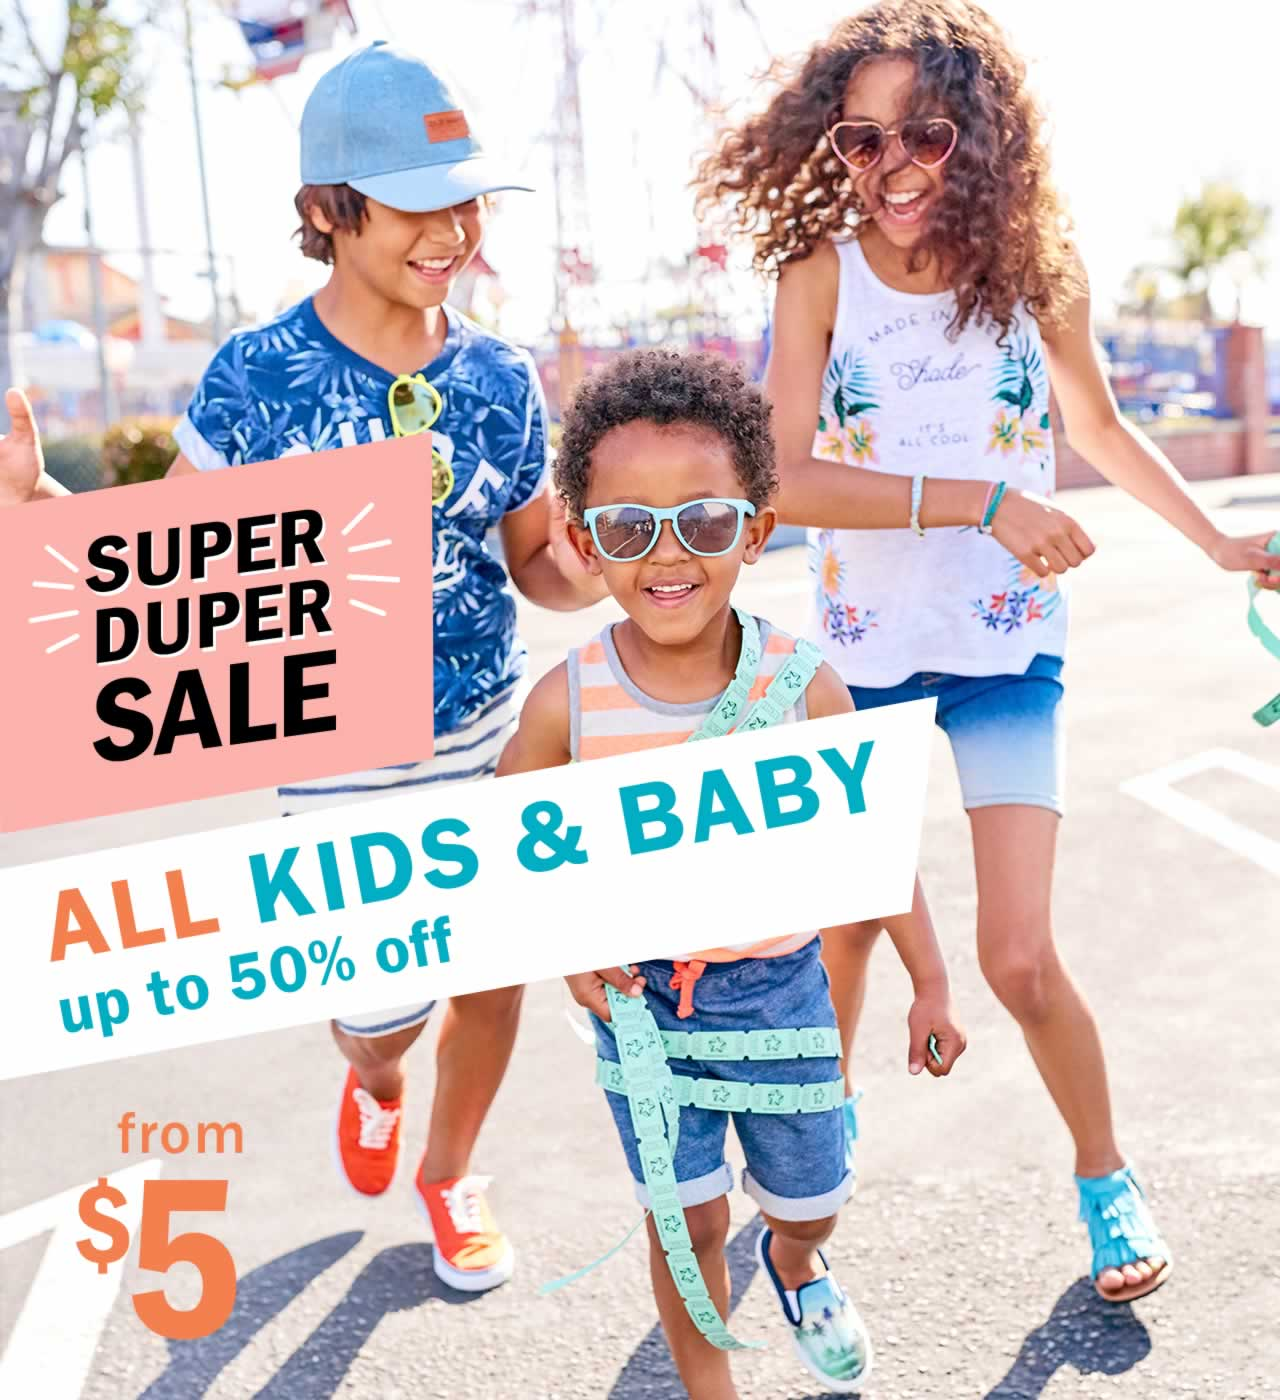 SUPER DUPER SALE ALL KIDS & BABY up to 50% off from $5